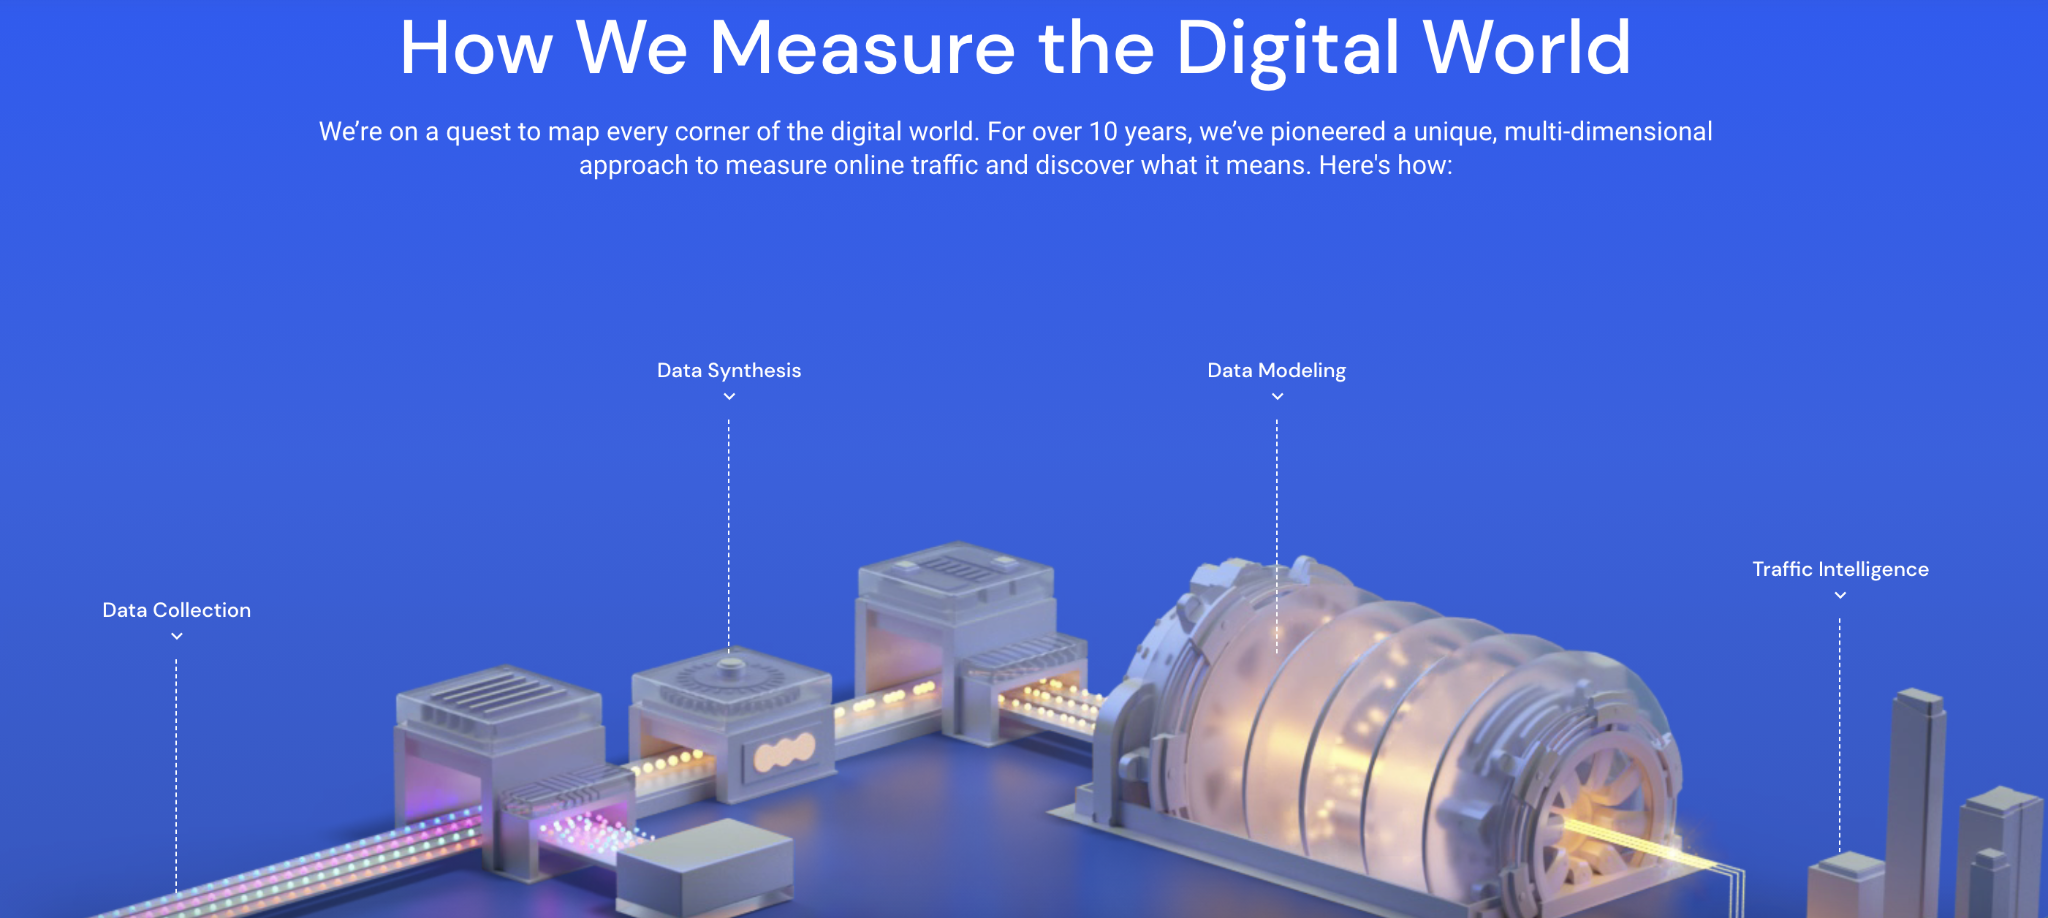 How Accurate is Similarweb: how we measure the digital world